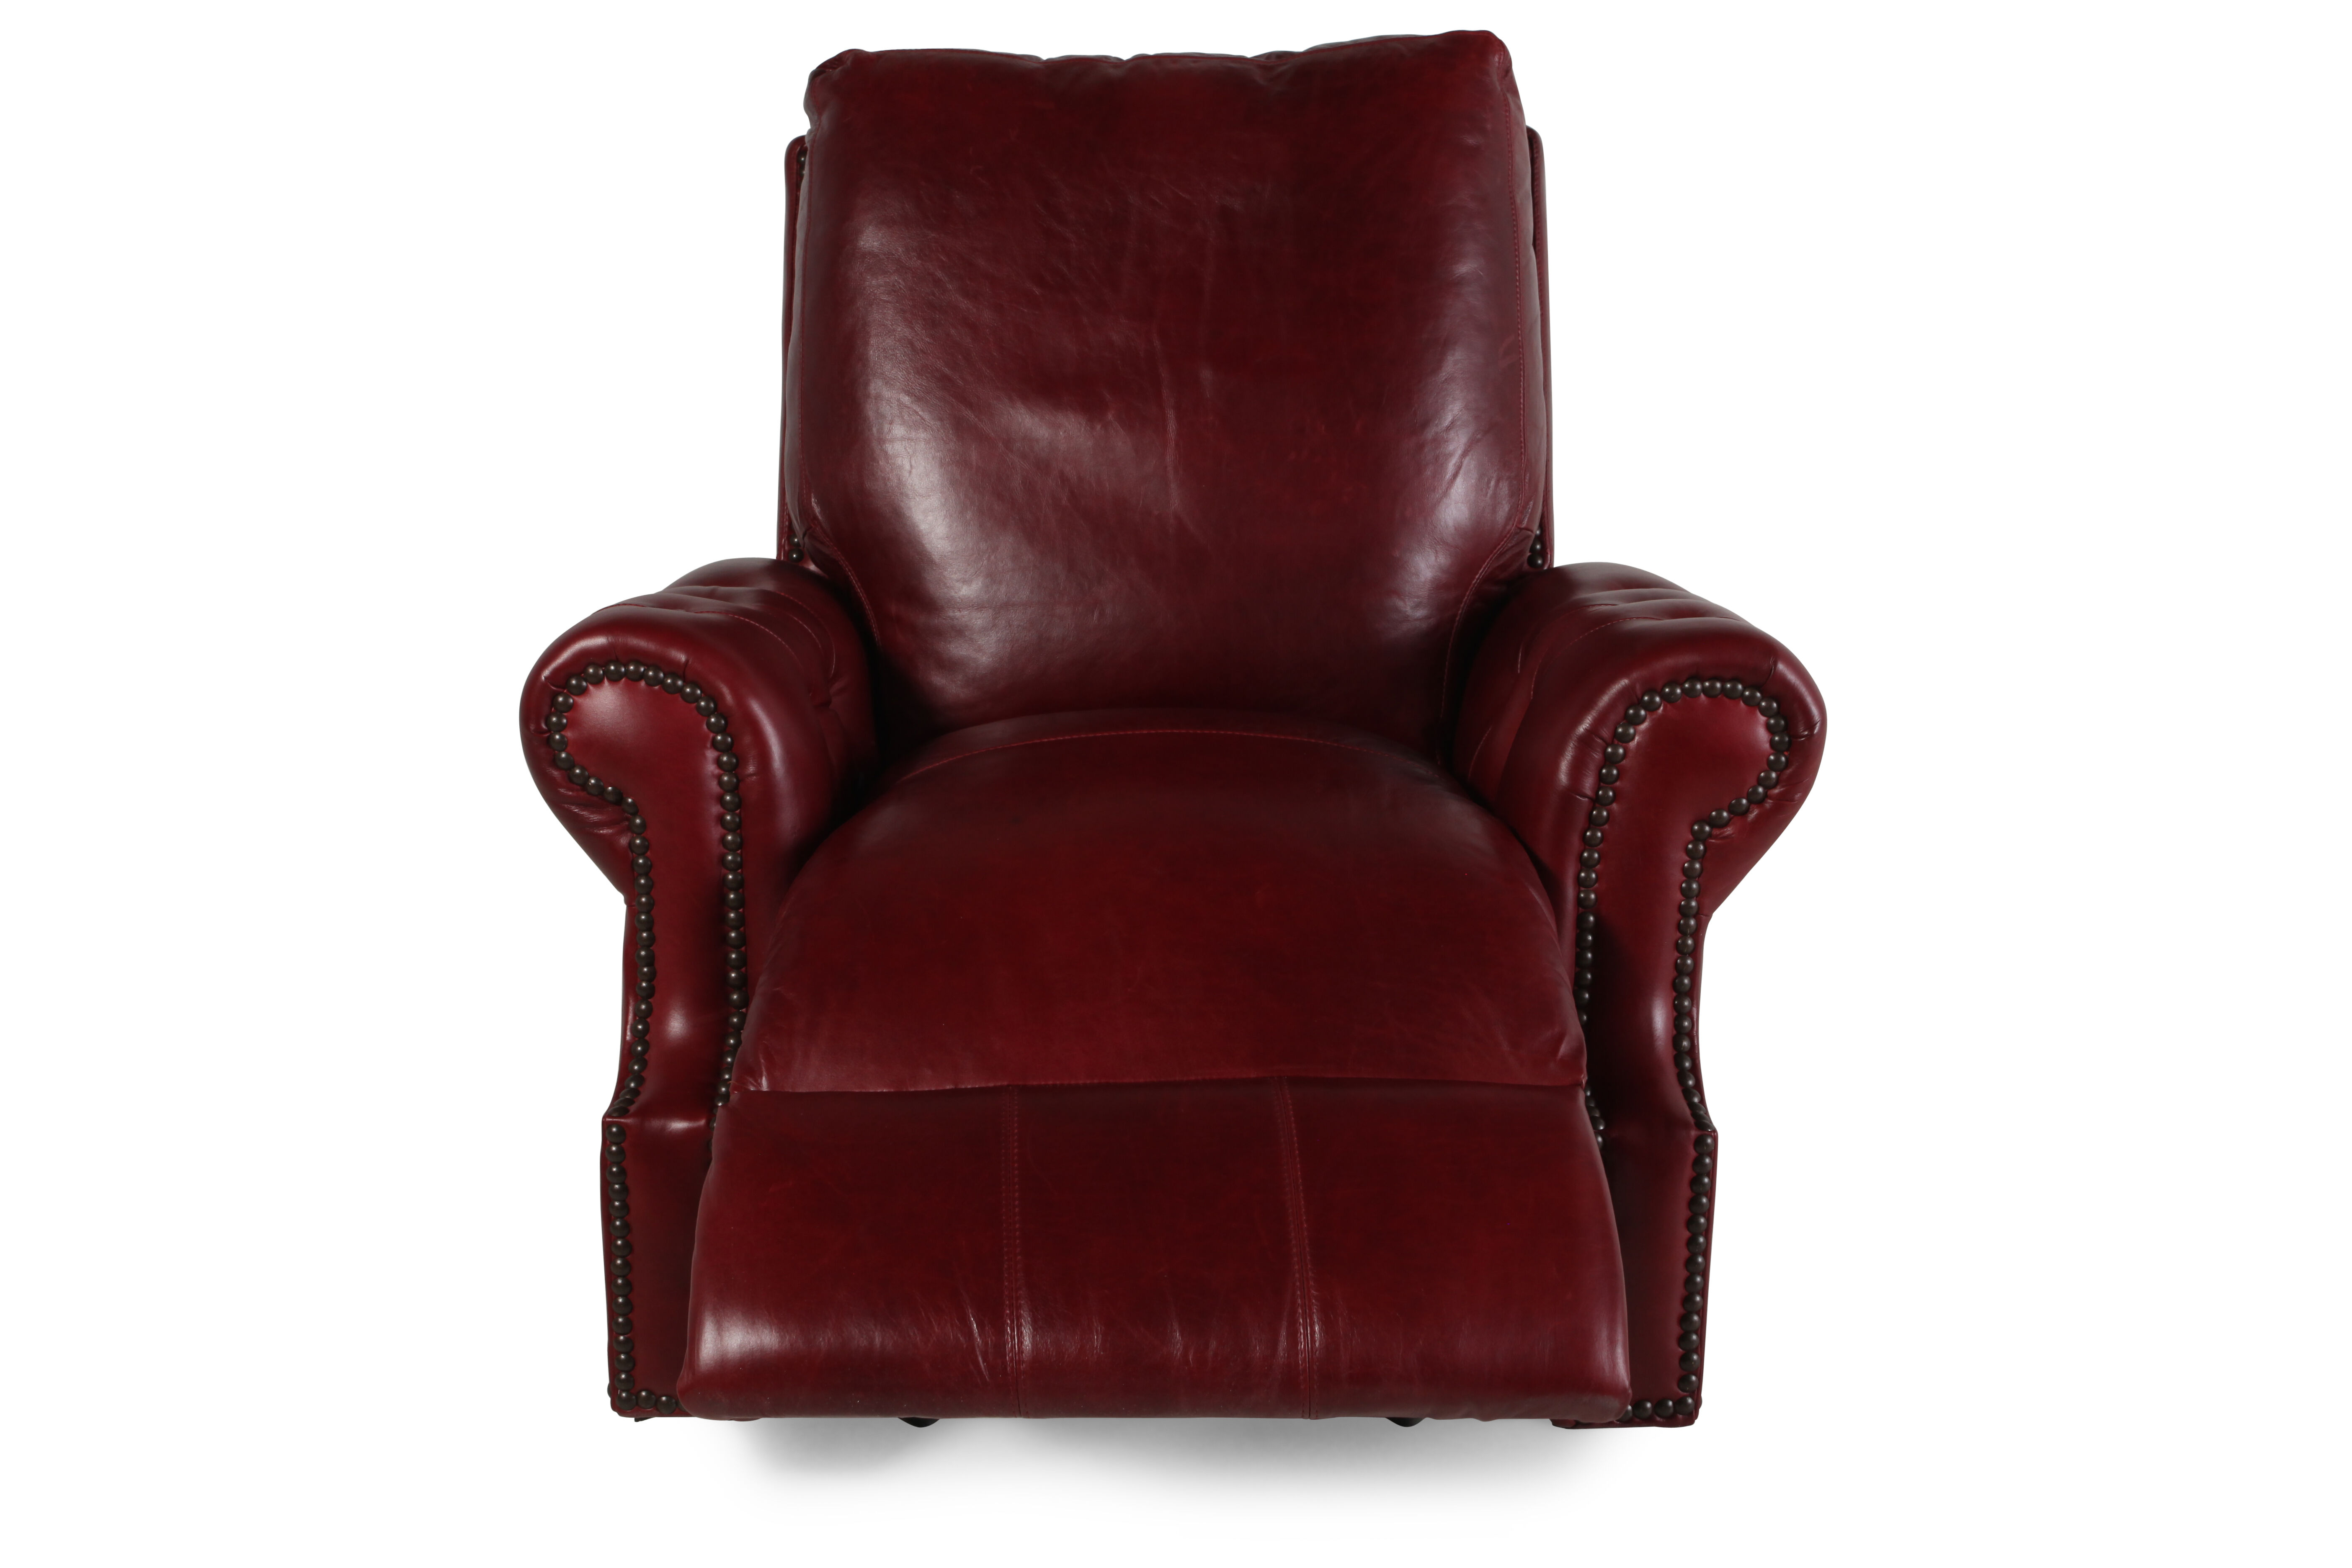 USA Leather Marsala Red Recliner  Mathis Brothers Furniture